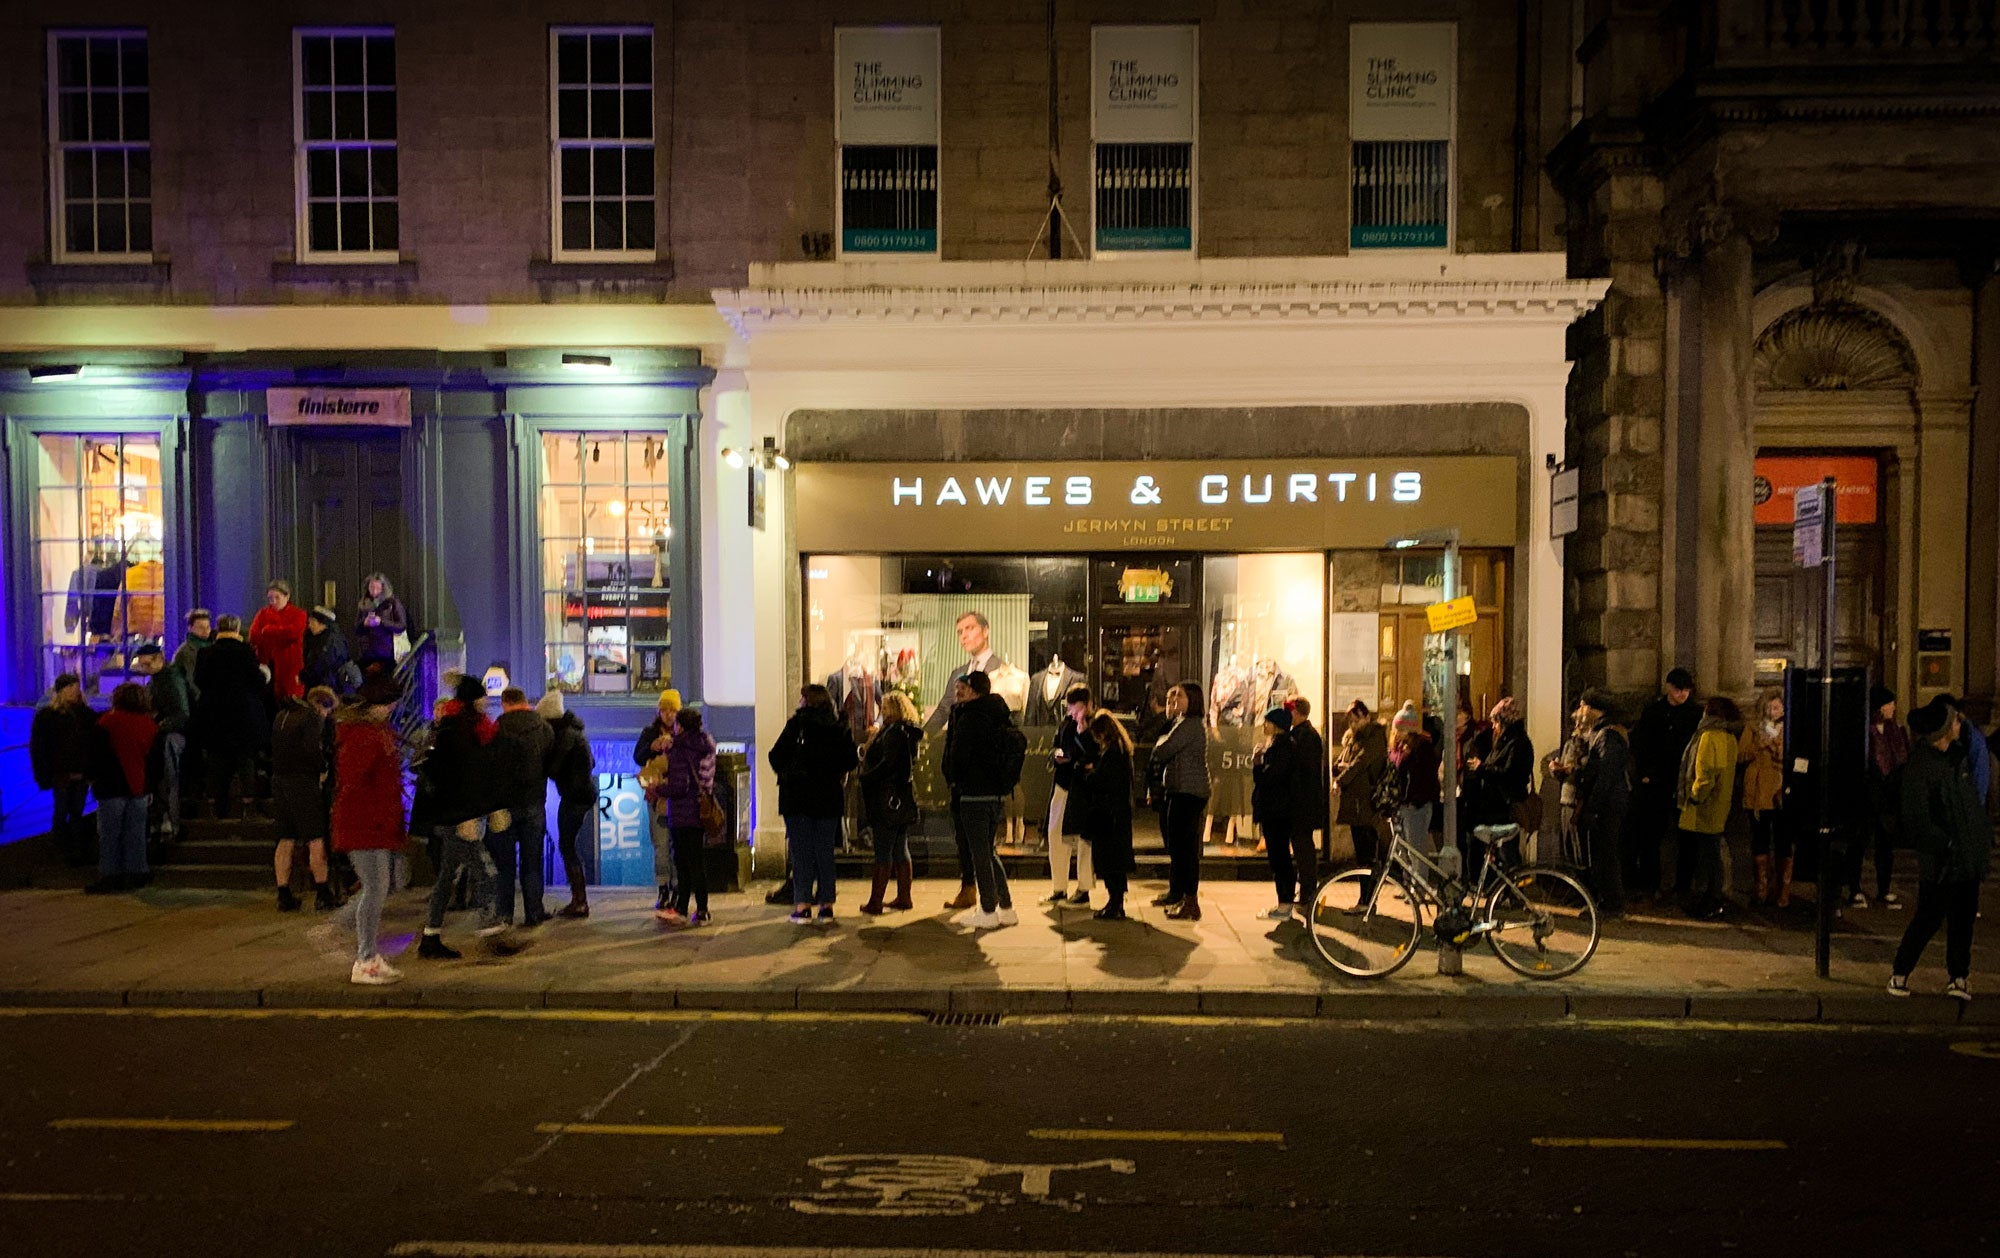 The queue outside Finisterre's Edinburgh store for the screening of Against the Tides